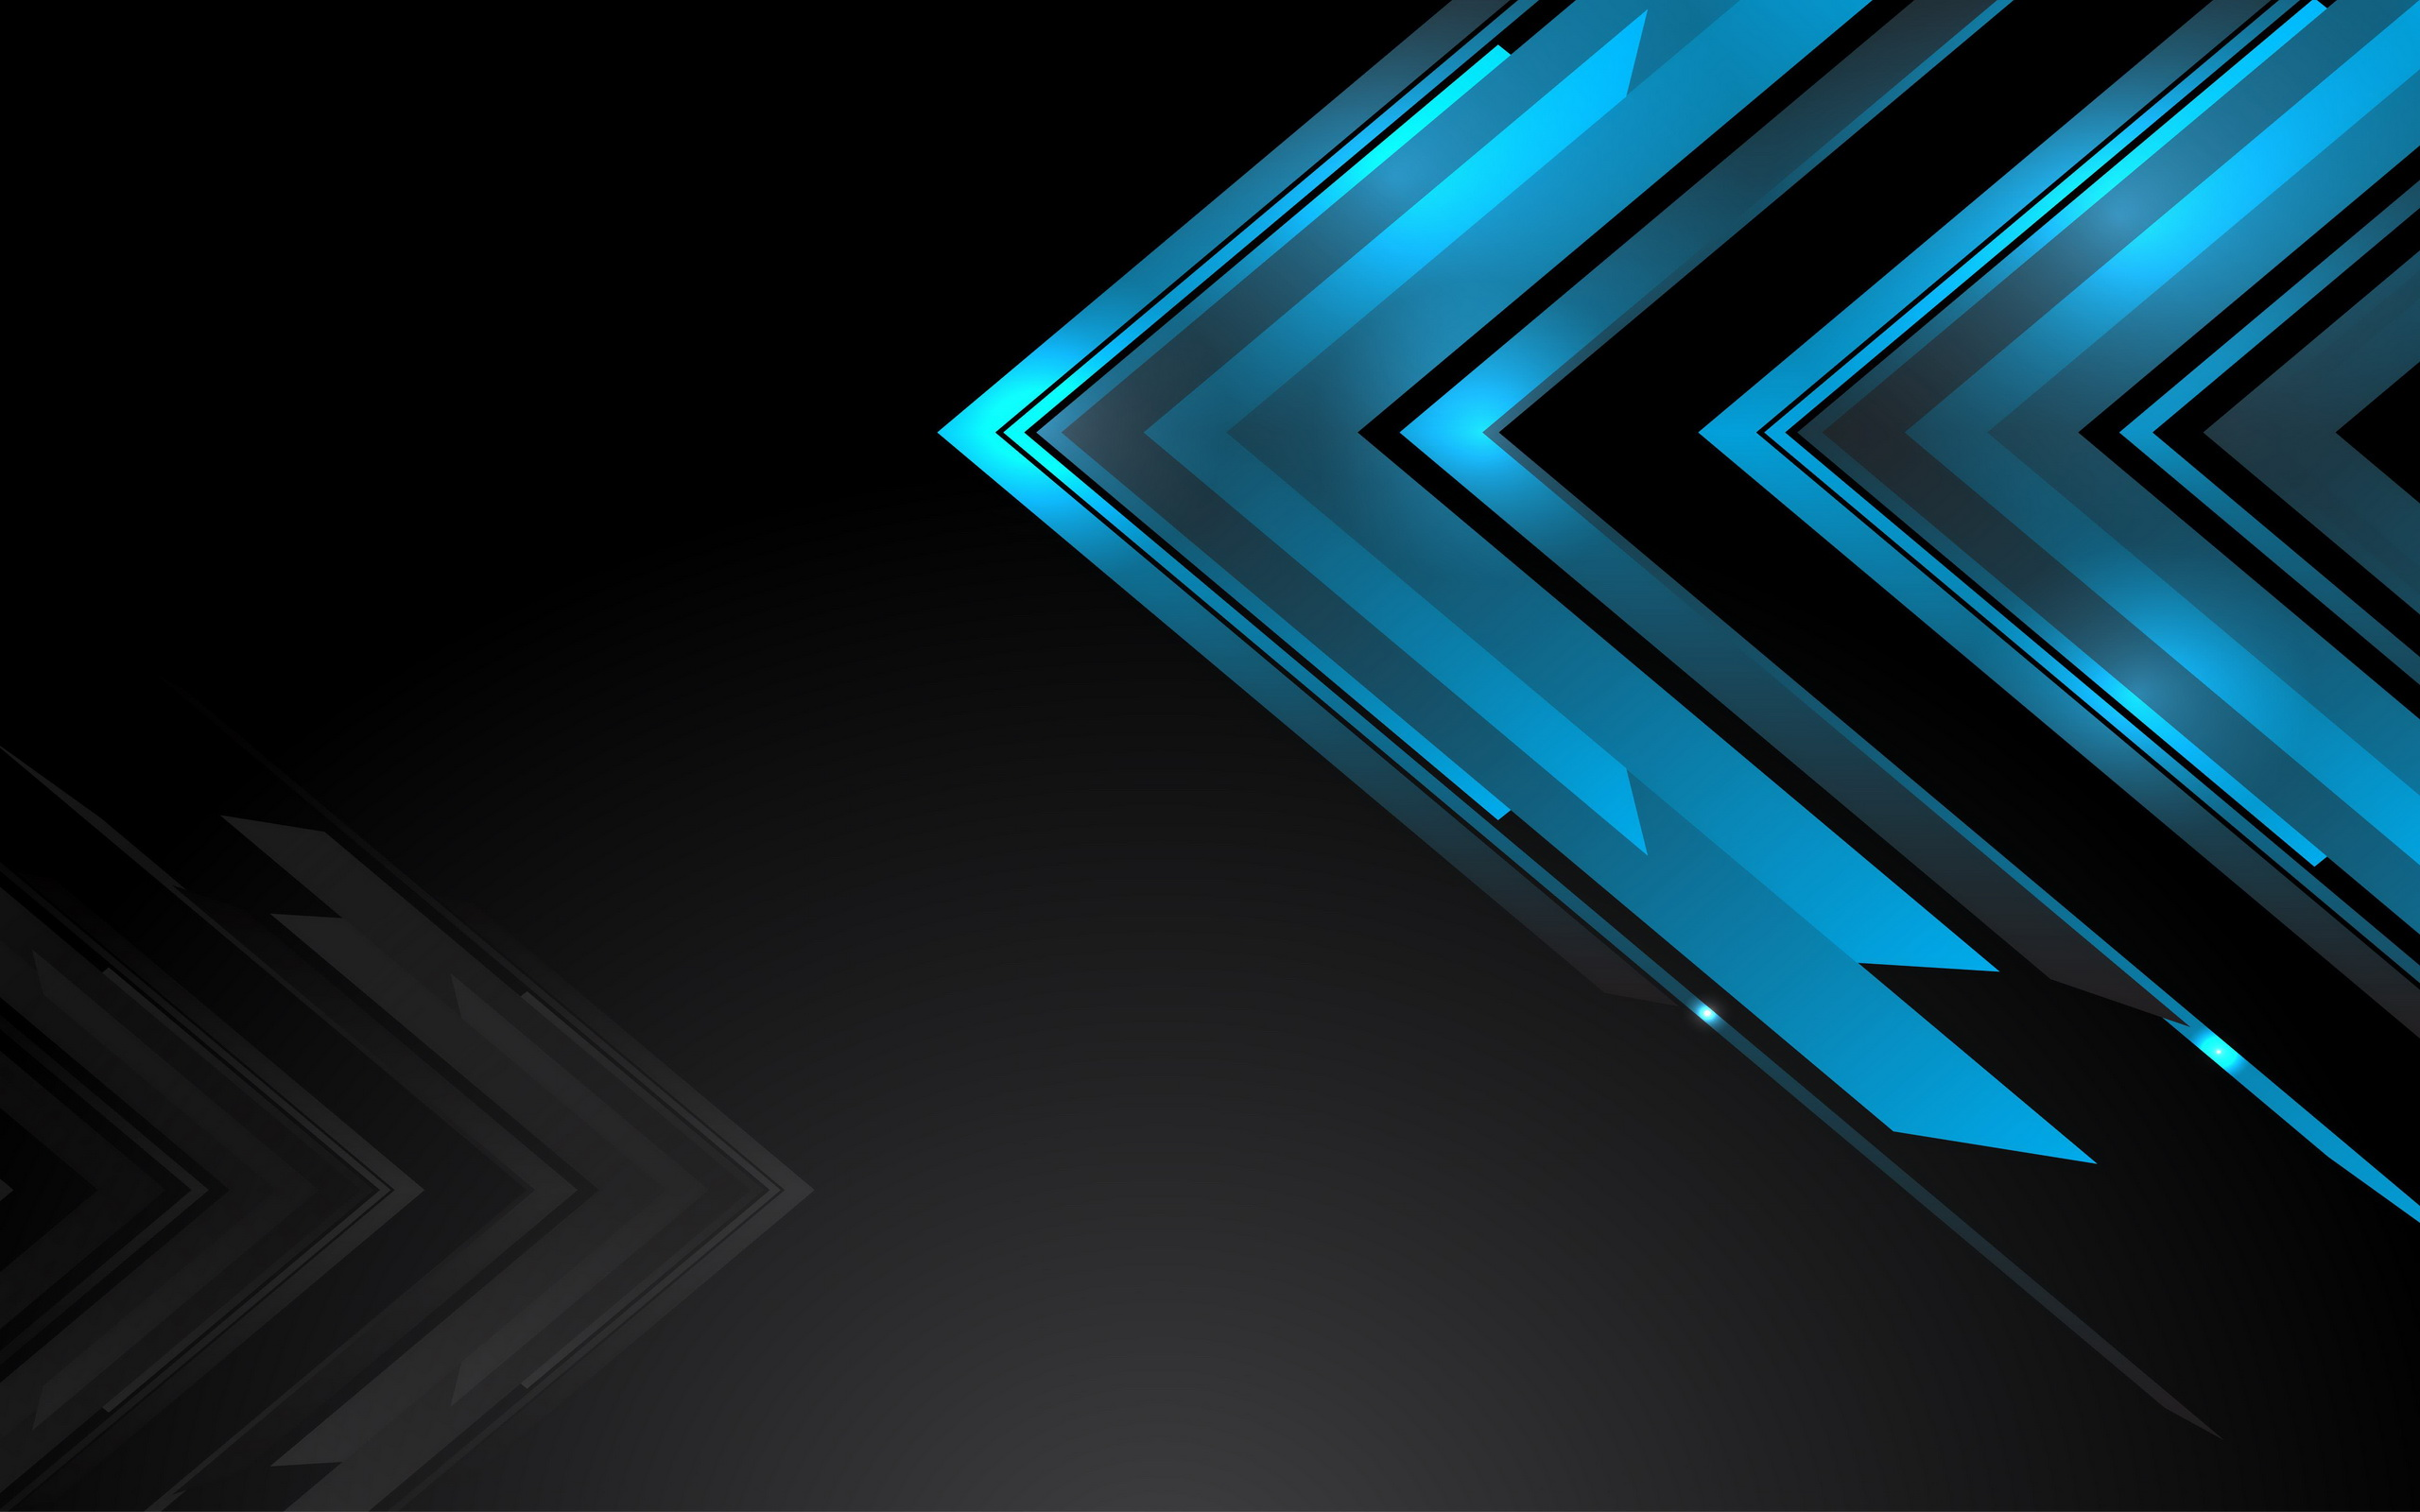 36 Black And Blue Tech Wallpaper On Wallpapersafari